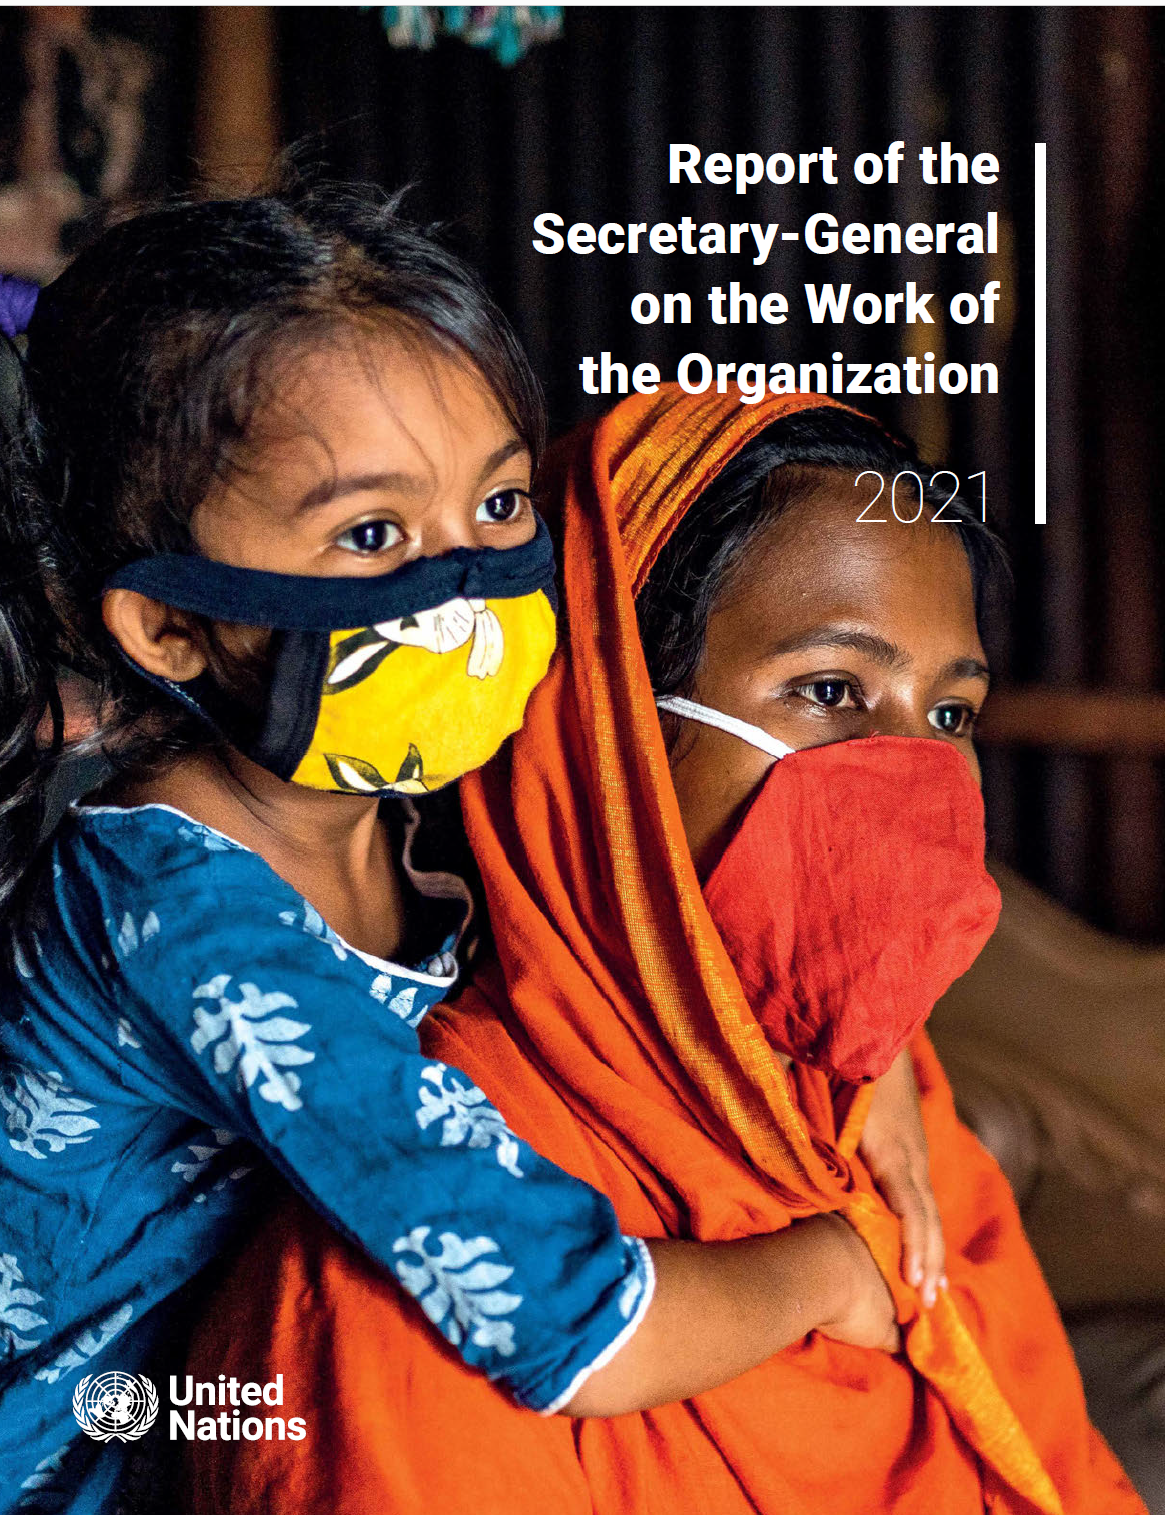 2021 Report of the Secretary-General on the Work of the Organization